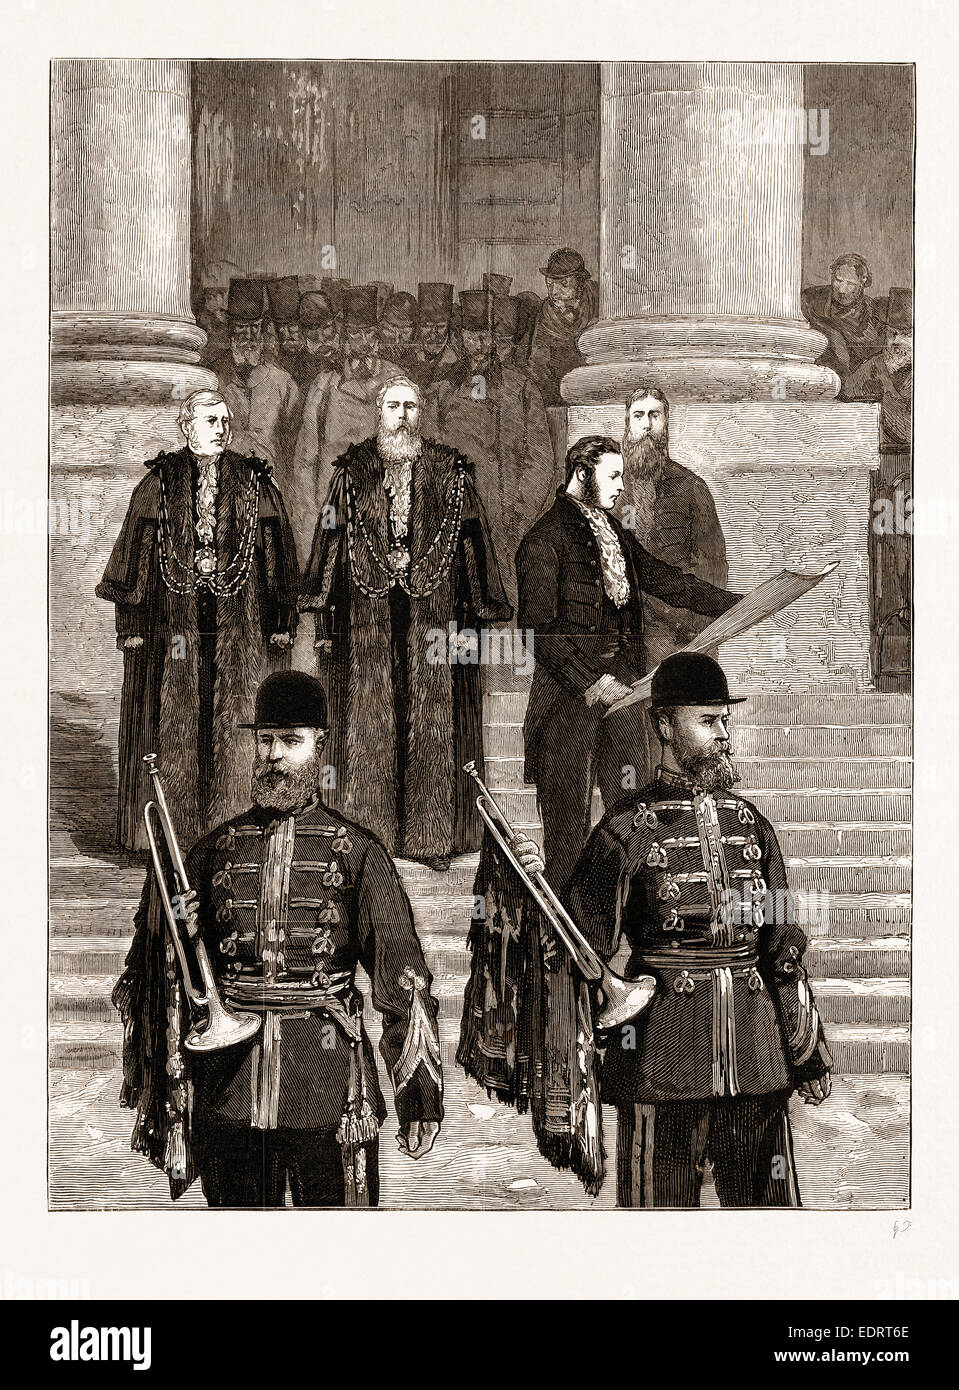 EMPRESS OF INDIA: PROCLAMATION OF THE QUEEN'S NEW TITLE AT THE ROYAL EXCHANGE, 1876 - Stock Image